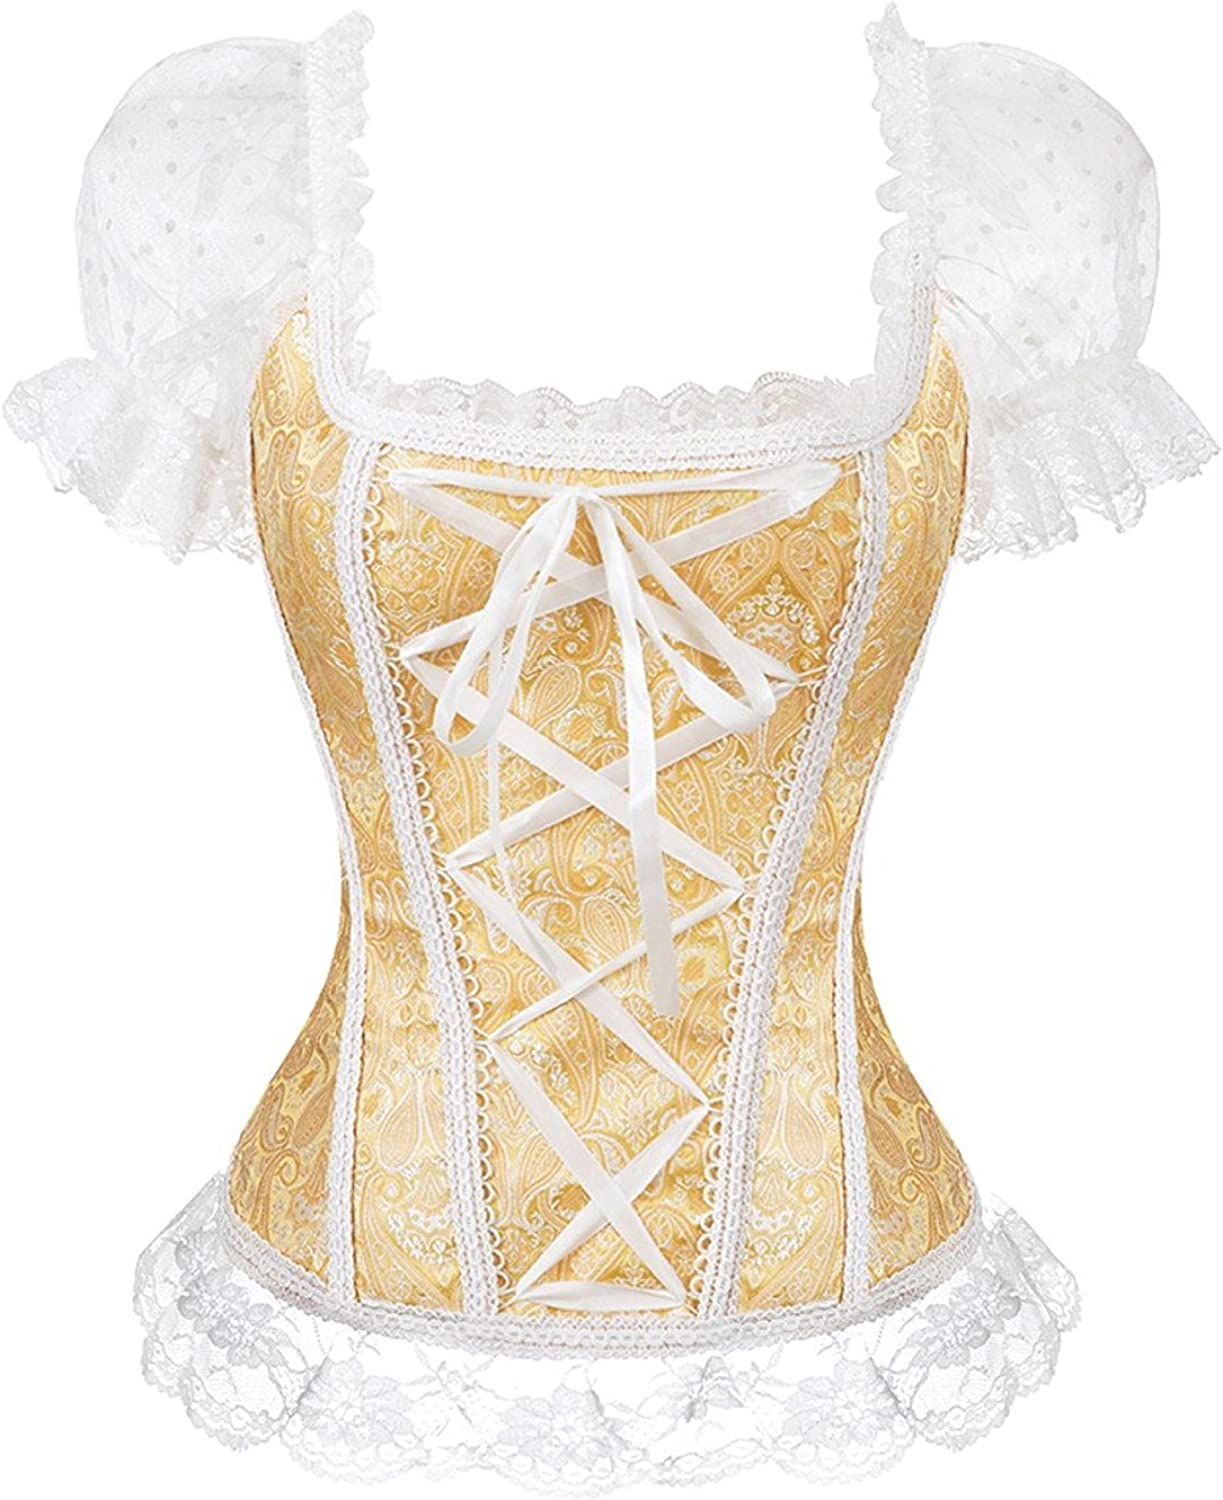 Blidece Gothic Tapestry Lace up Boned Corset Overbust Bustier with Lace Sleeves